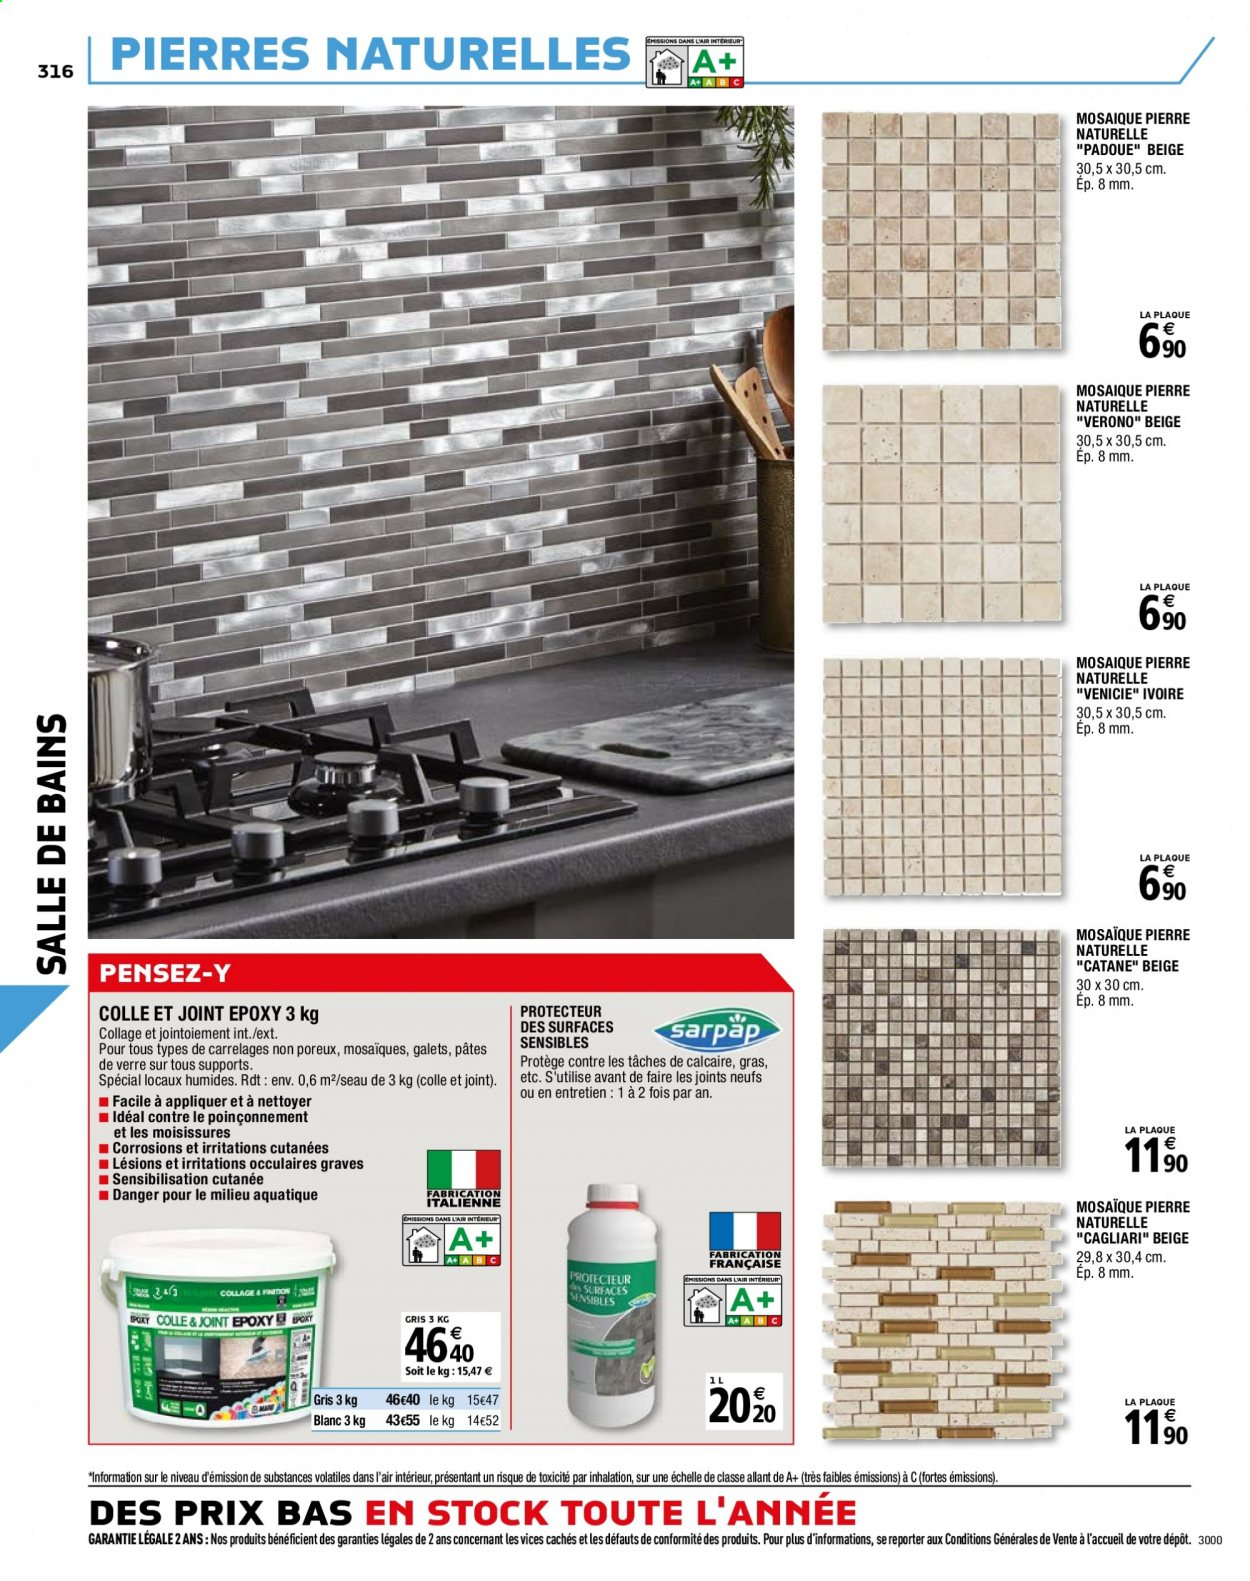 Catalogue Brico Depot Page 316 Vos Promos